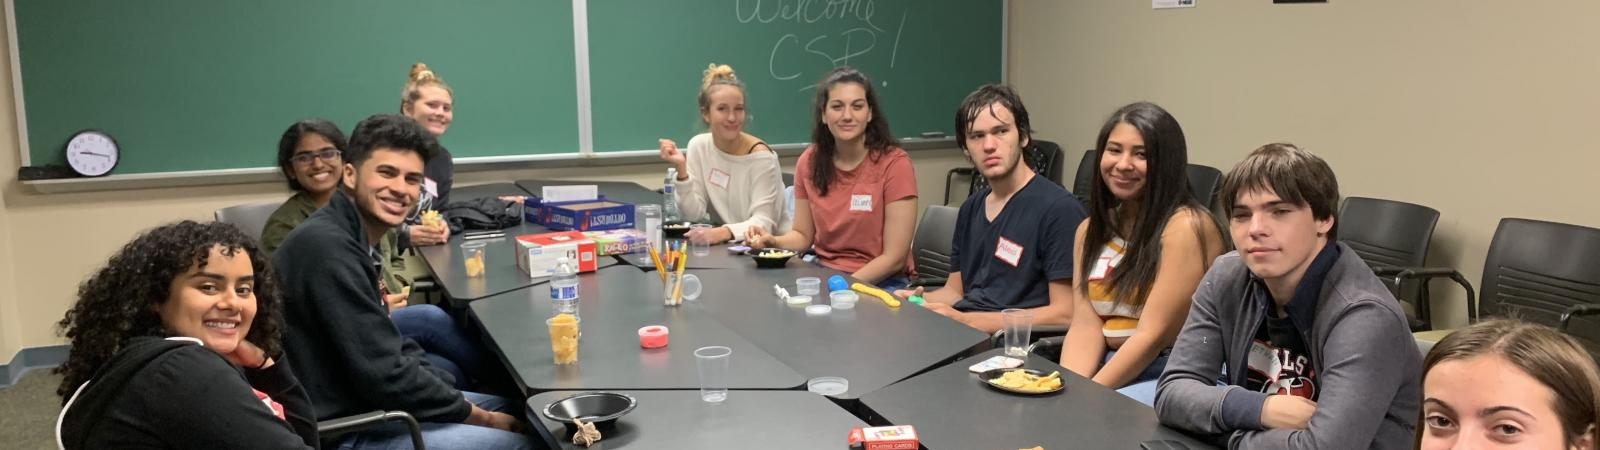 CSP Peer Mentors and Students convene at a table for a meeting